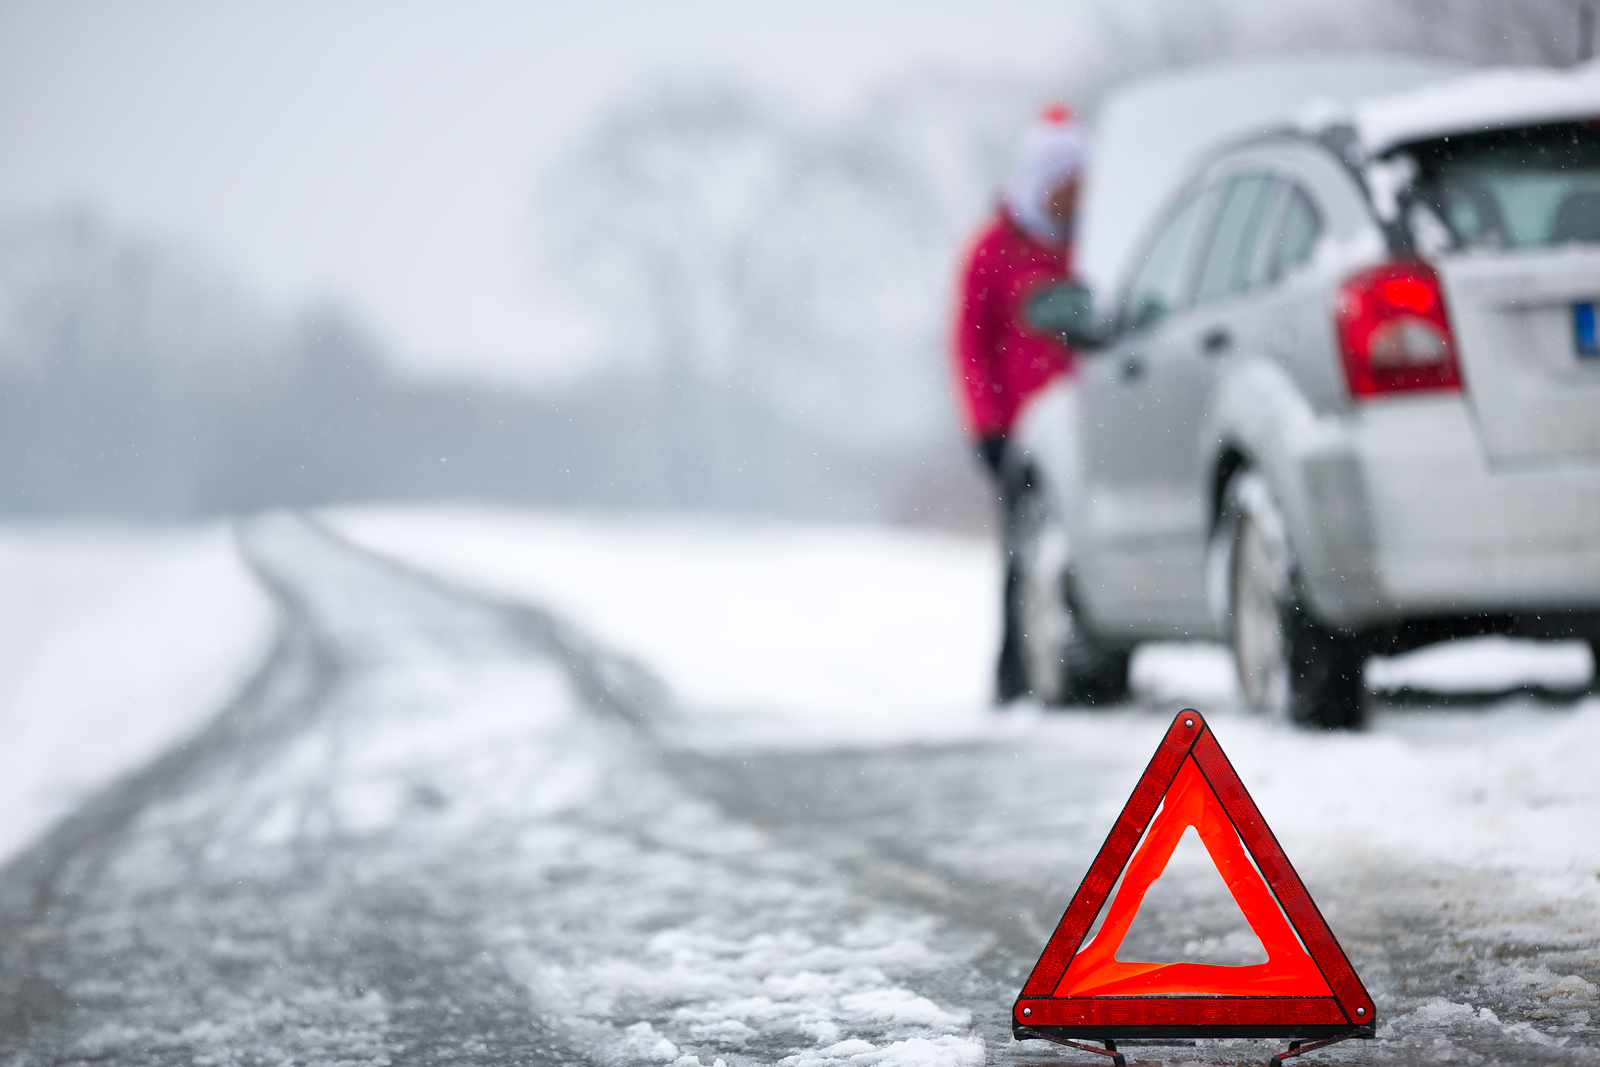 Winter-car breakdown-warning triangle-travel nursing memory